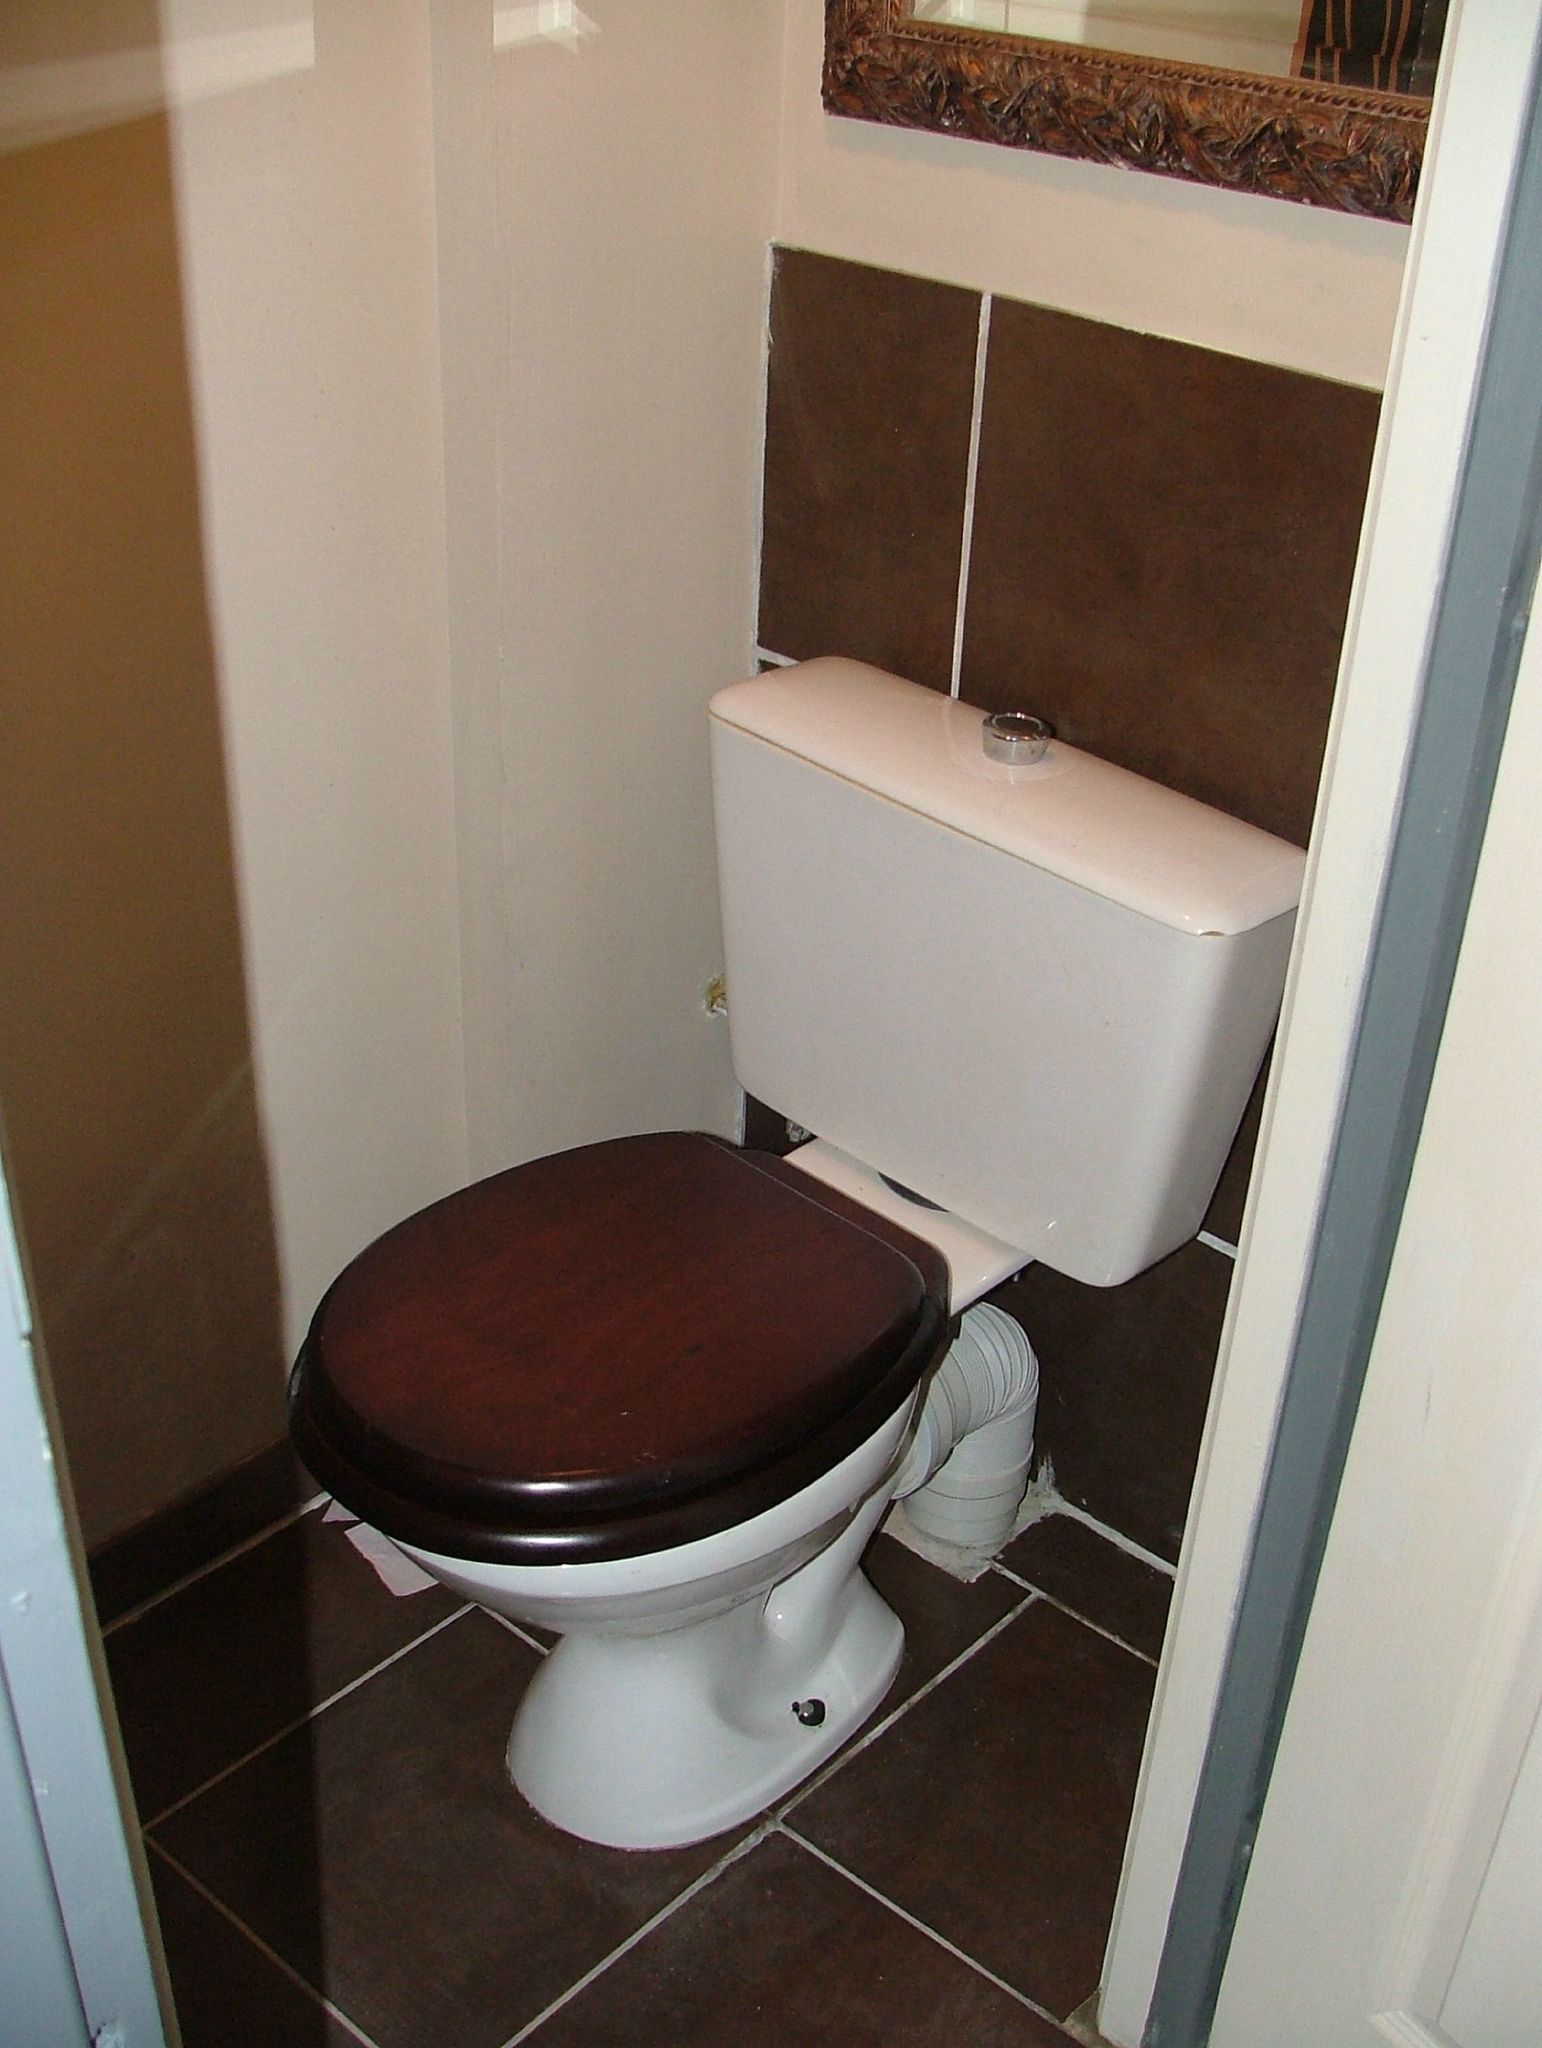 Carrelage toilette sol finest cette photo montre des wc - Idee carrelage toilette ...